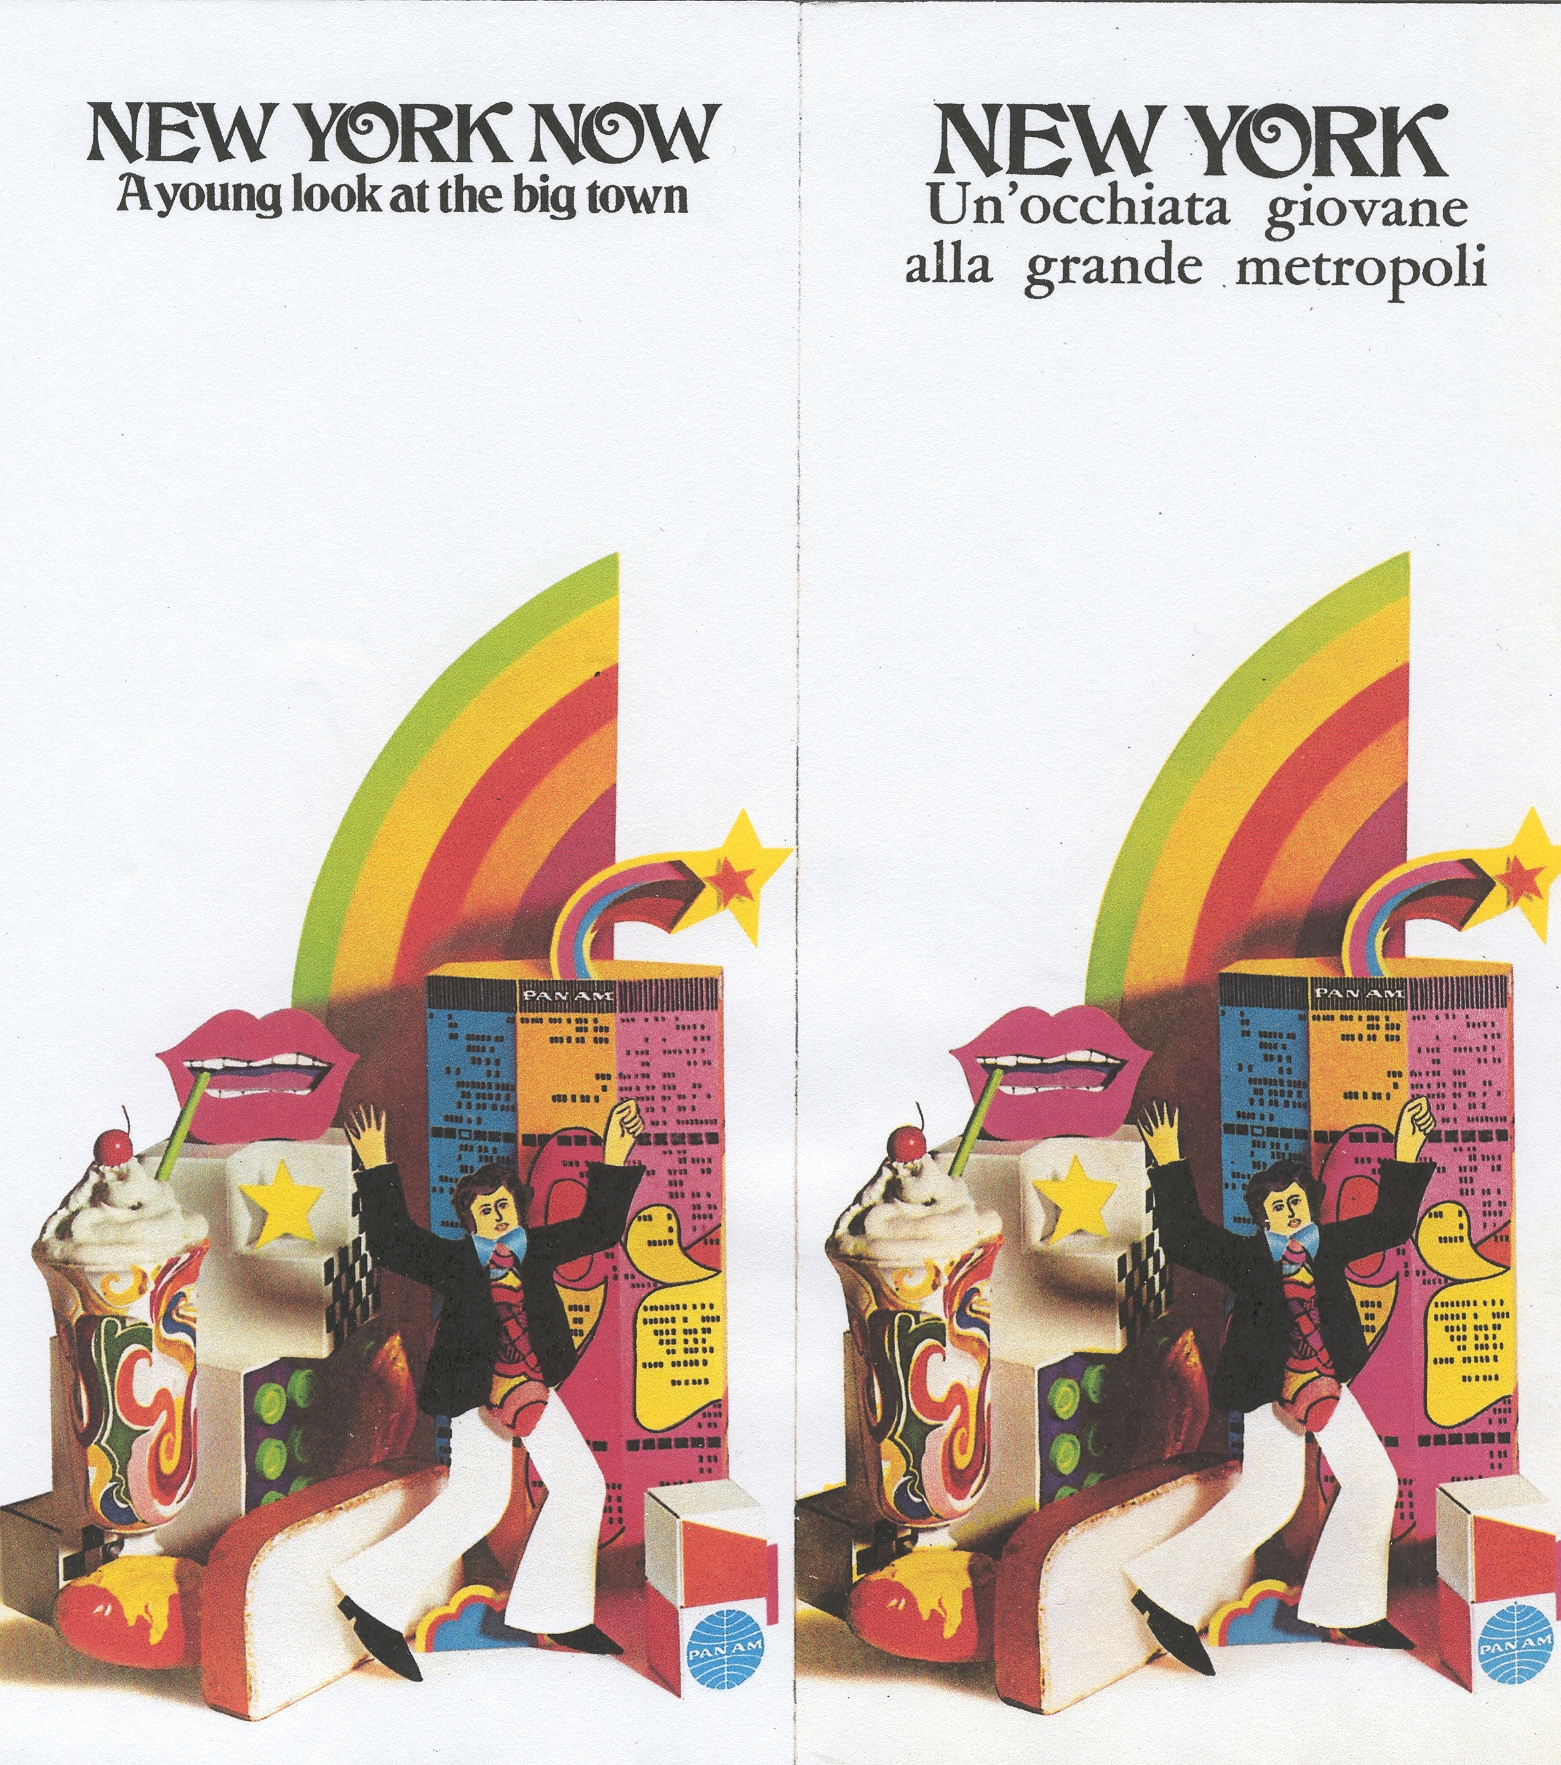 Sample brochure covers promoting New York early 1970s